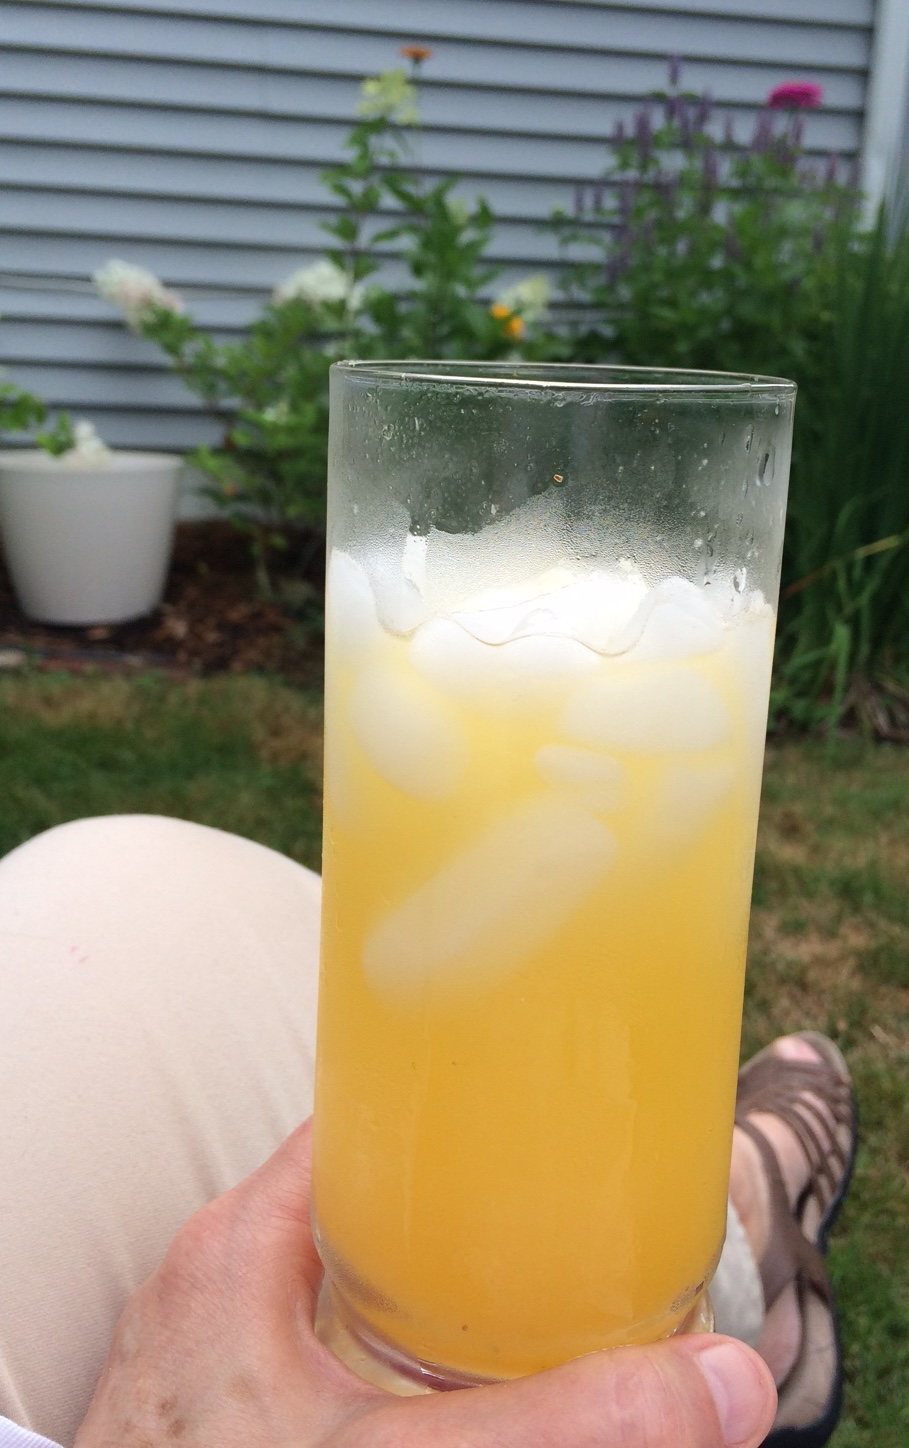 icy drink in garden